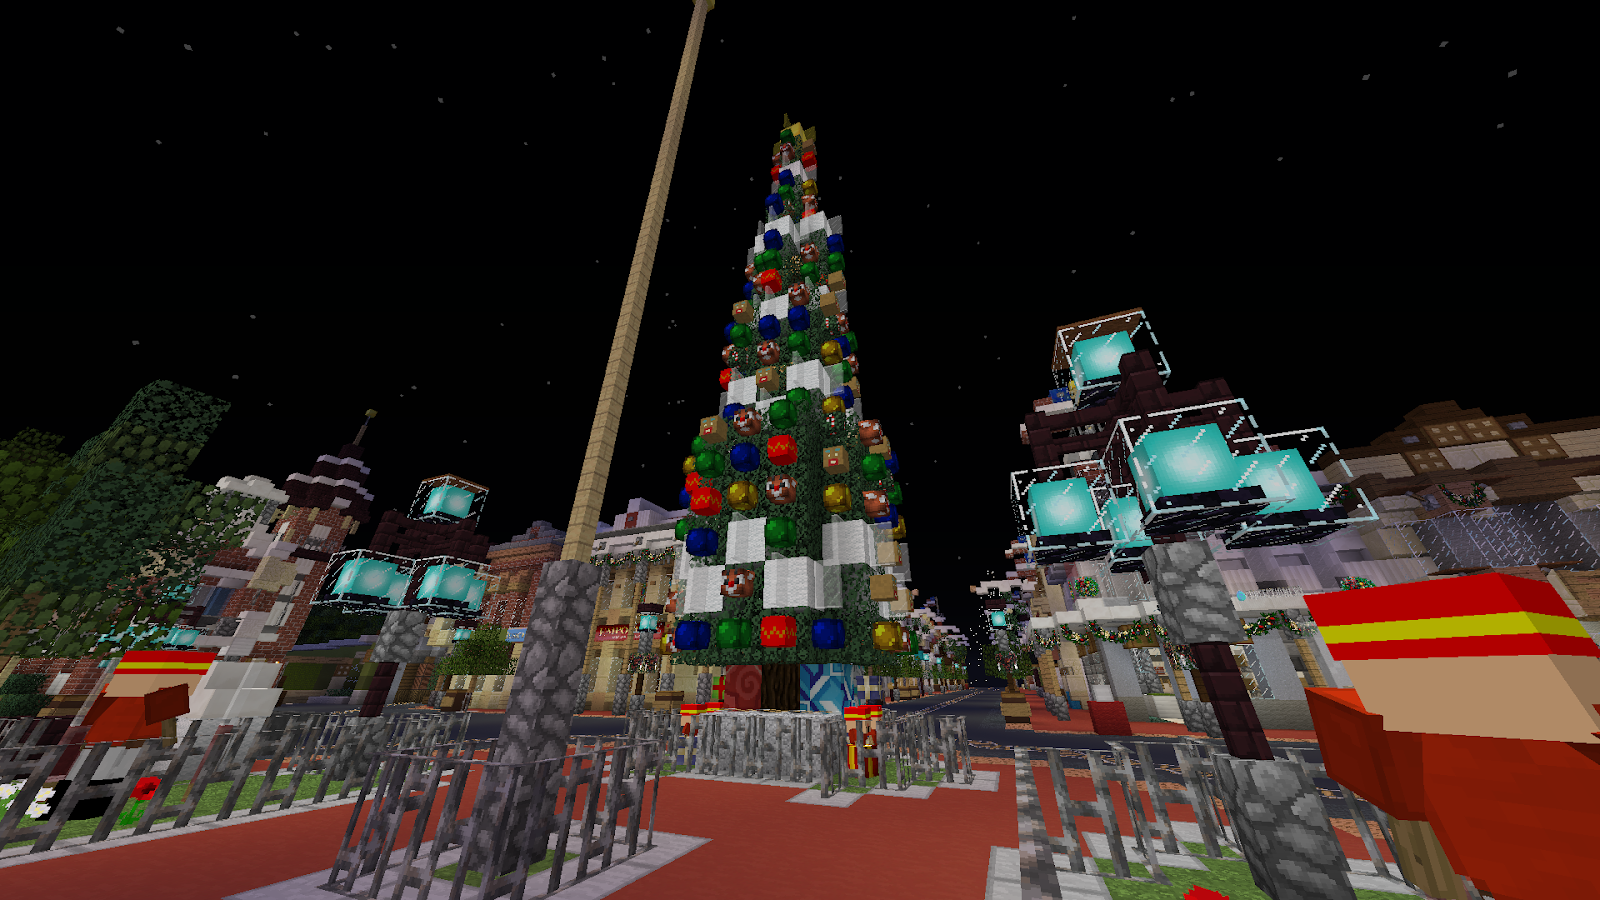 Christmas Minecraft Decorations.Walt Disney World Christmas Decorations On Mcparks